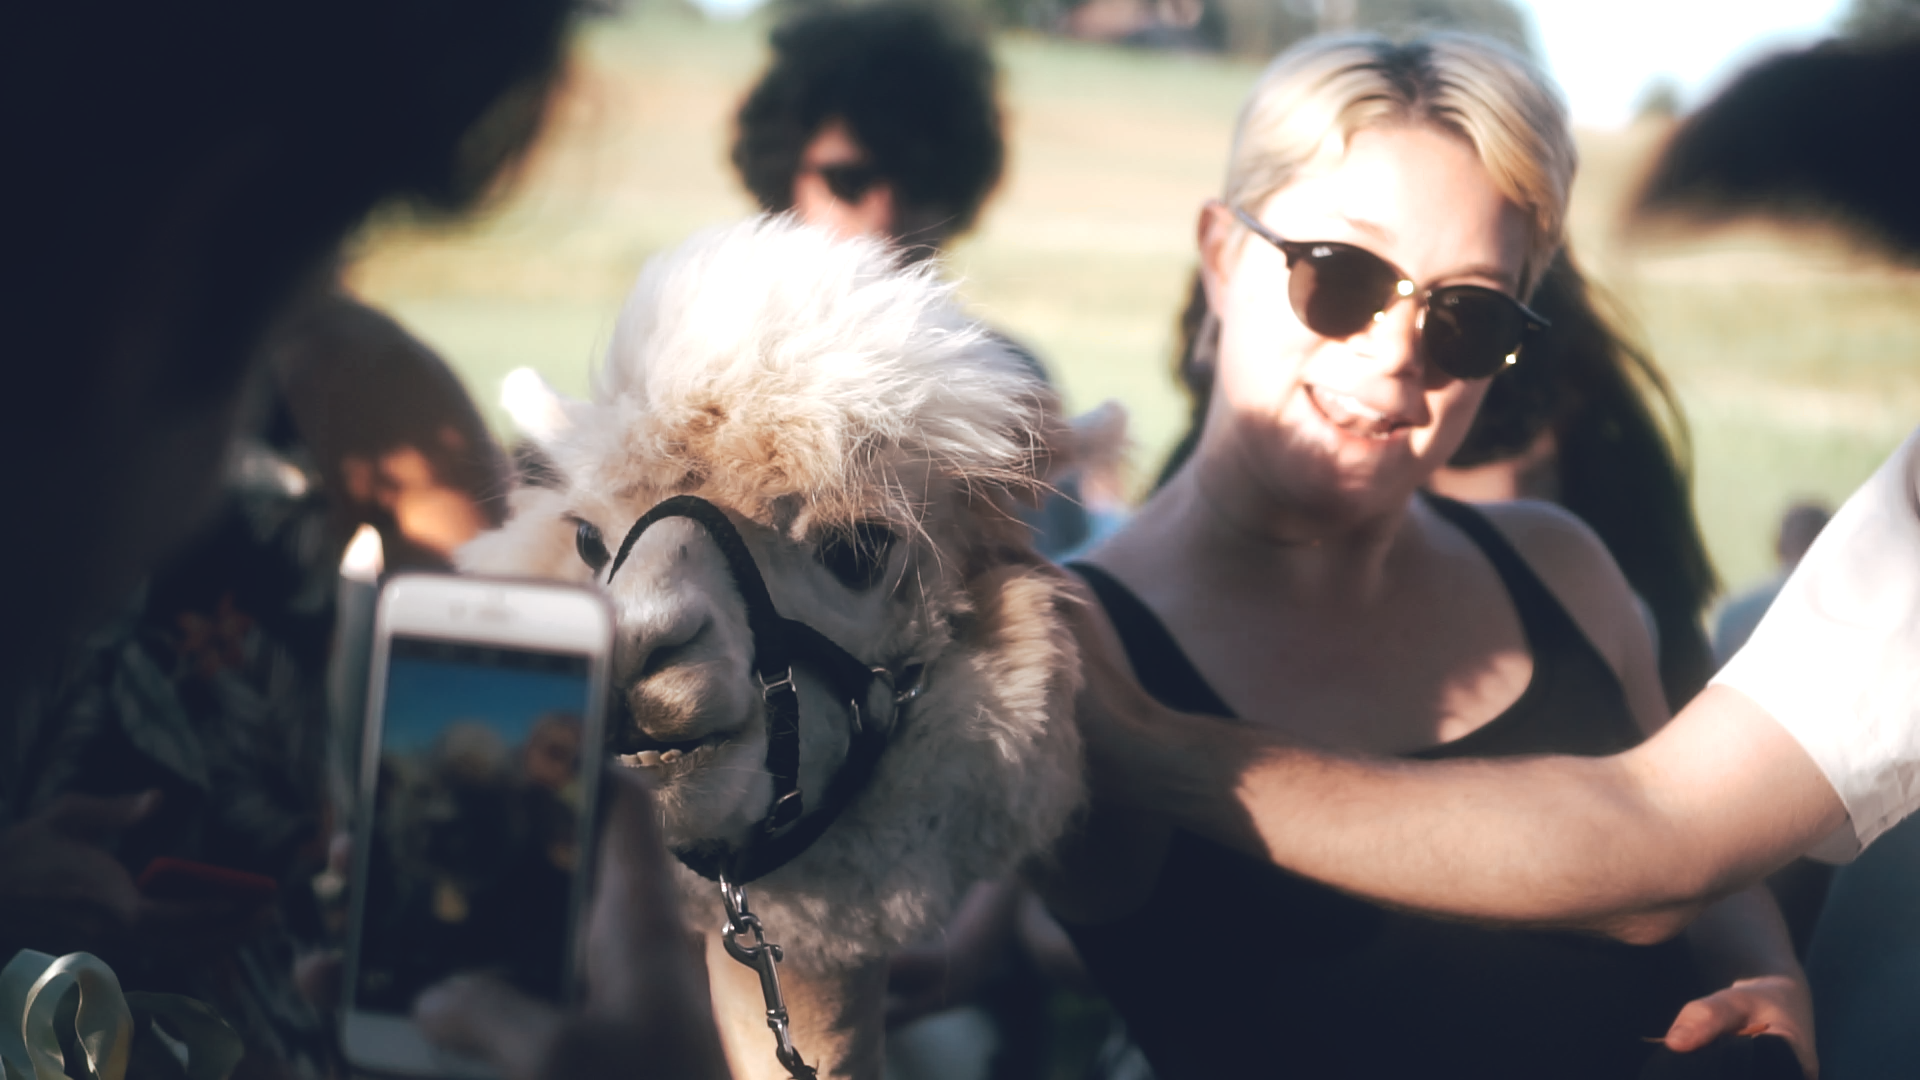 AKQA-SUMMER-PARTY-LLAMA.png